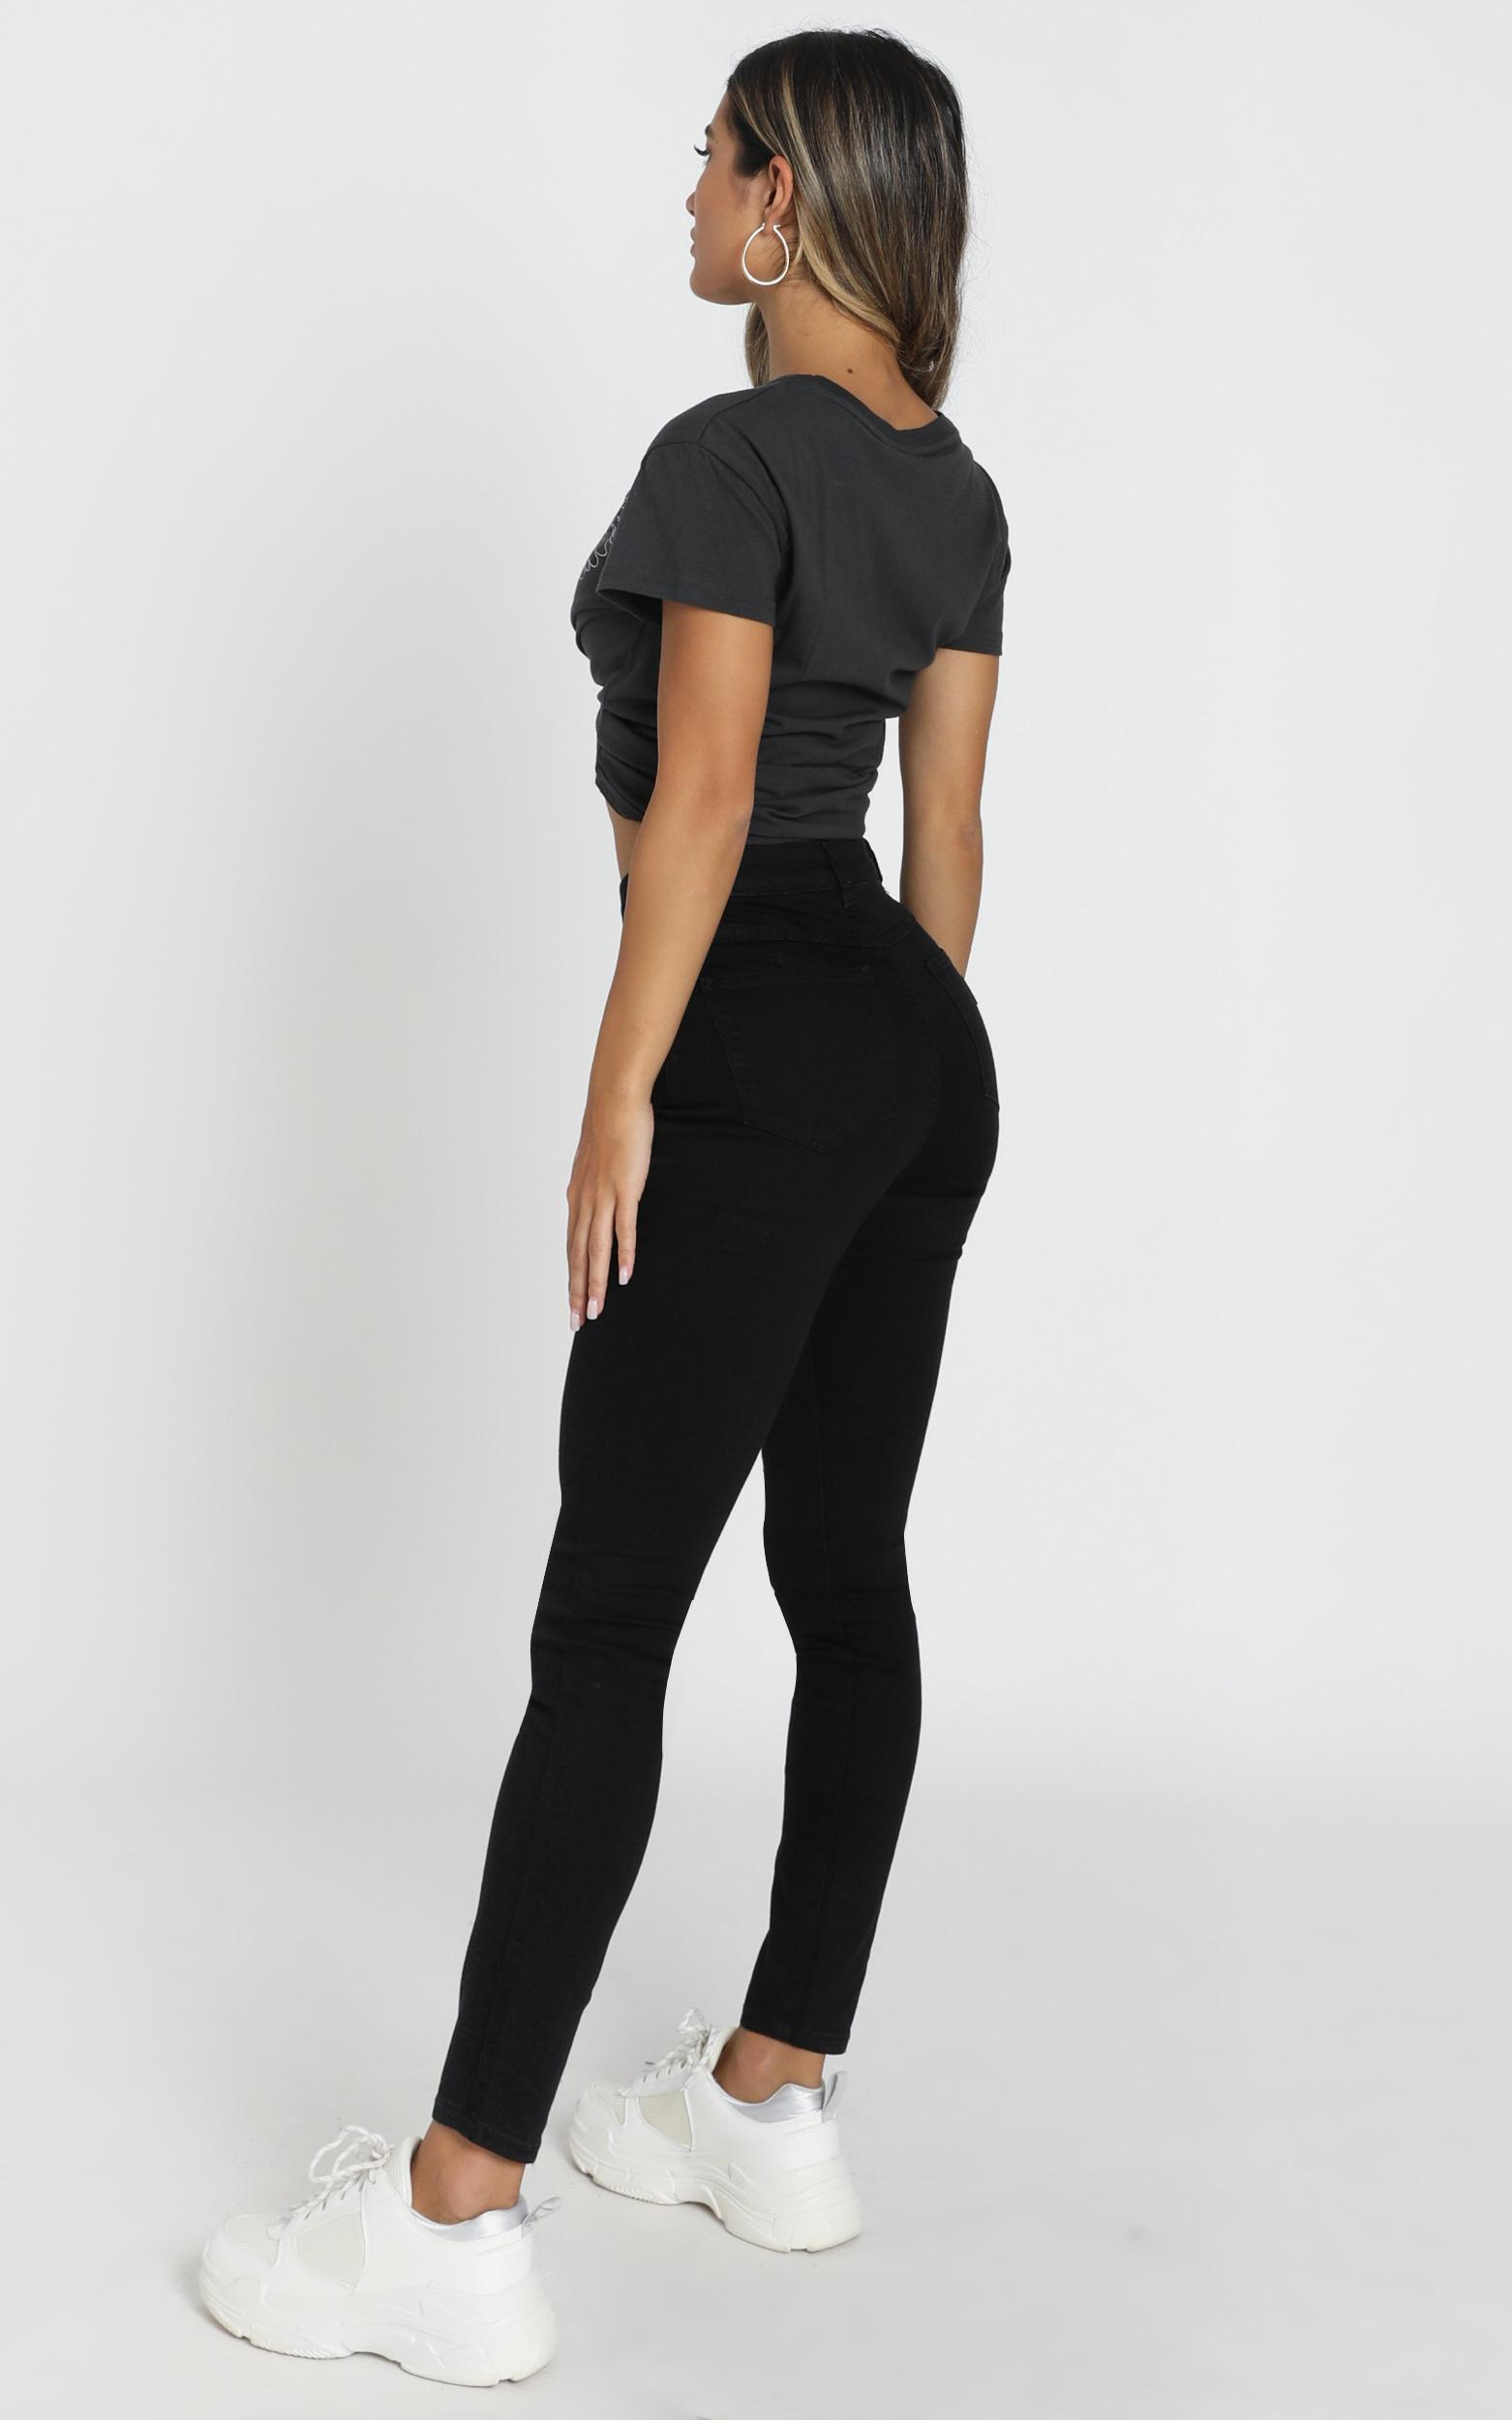 Abrand - A High Skinny Ankle Basher Jeans in black magic - 14 (XL), BLK2, hi-res image number null